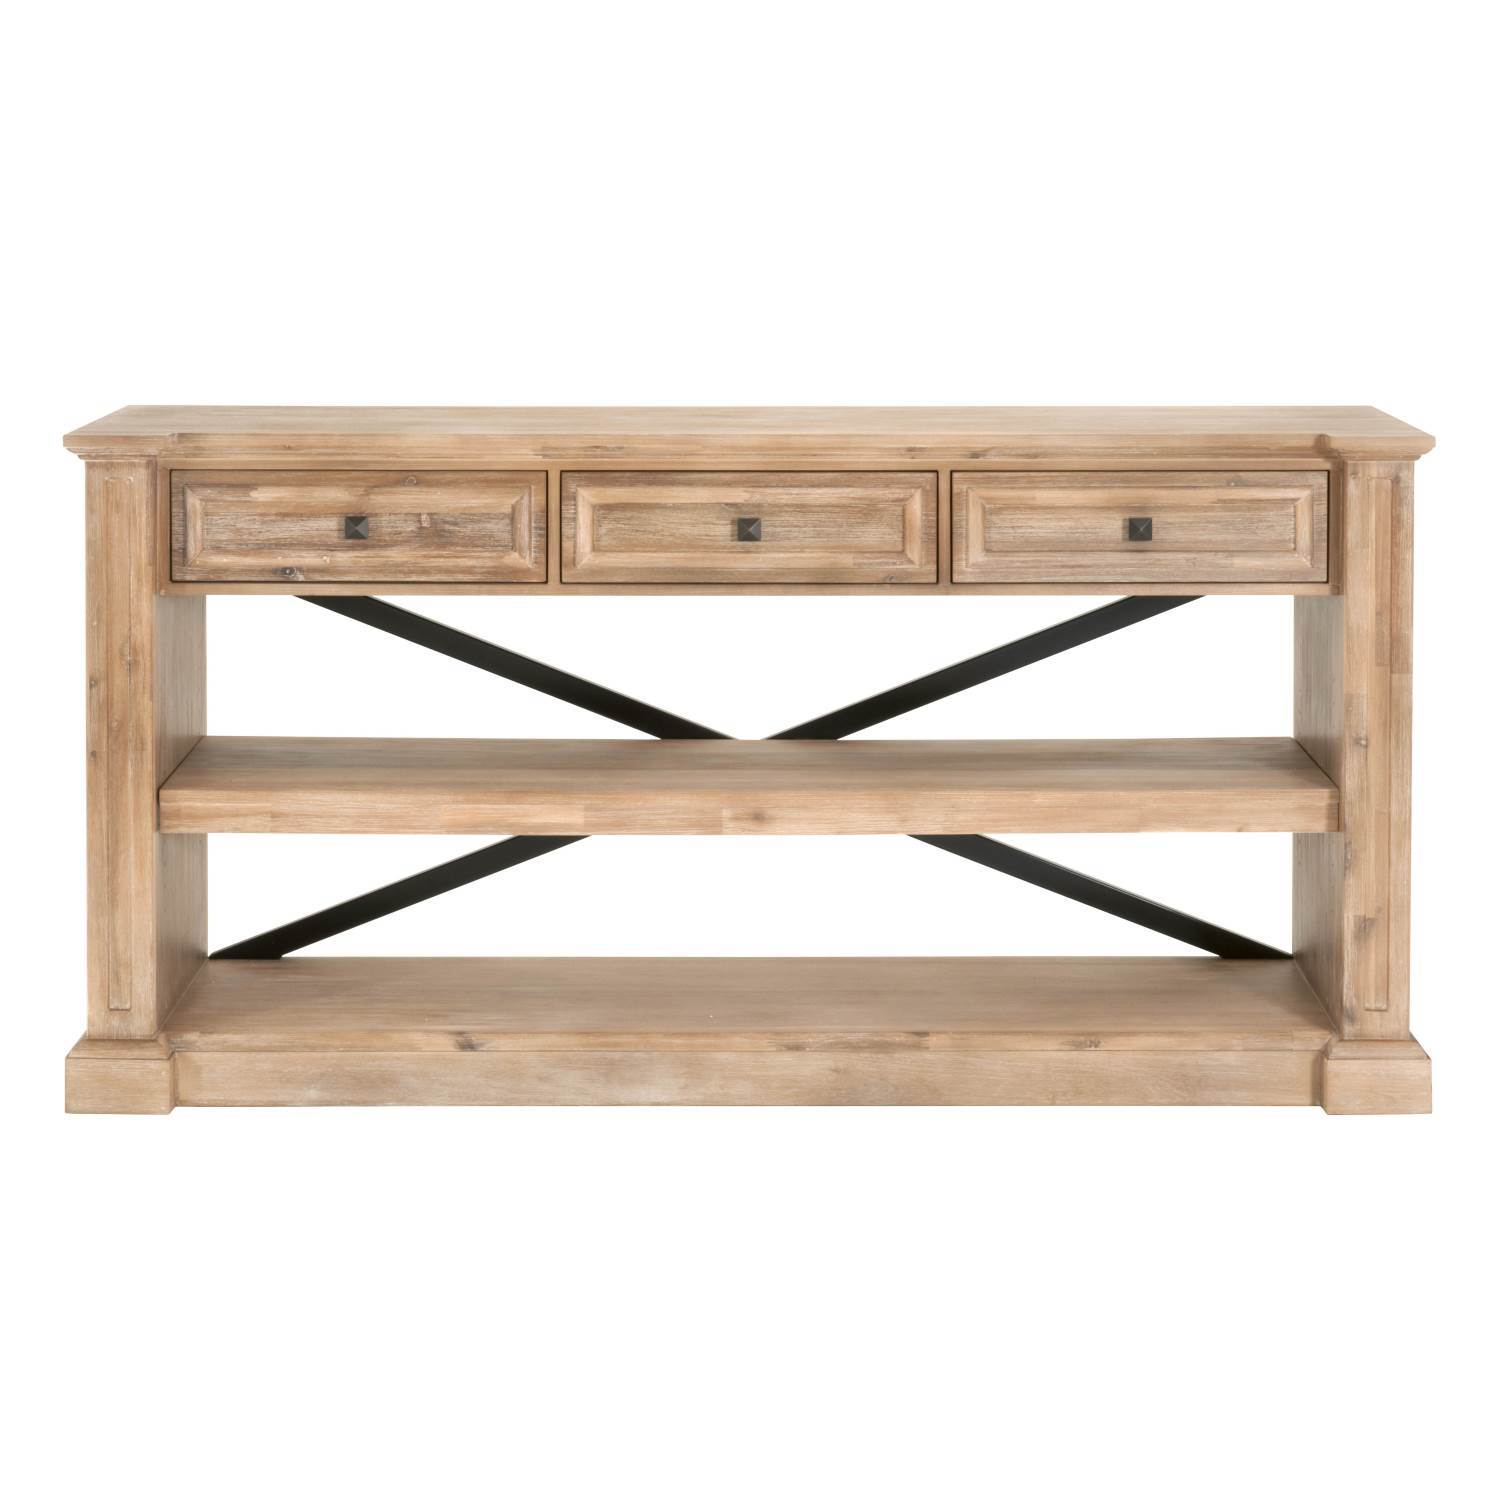 Hudson Dining Console in Stone Wash